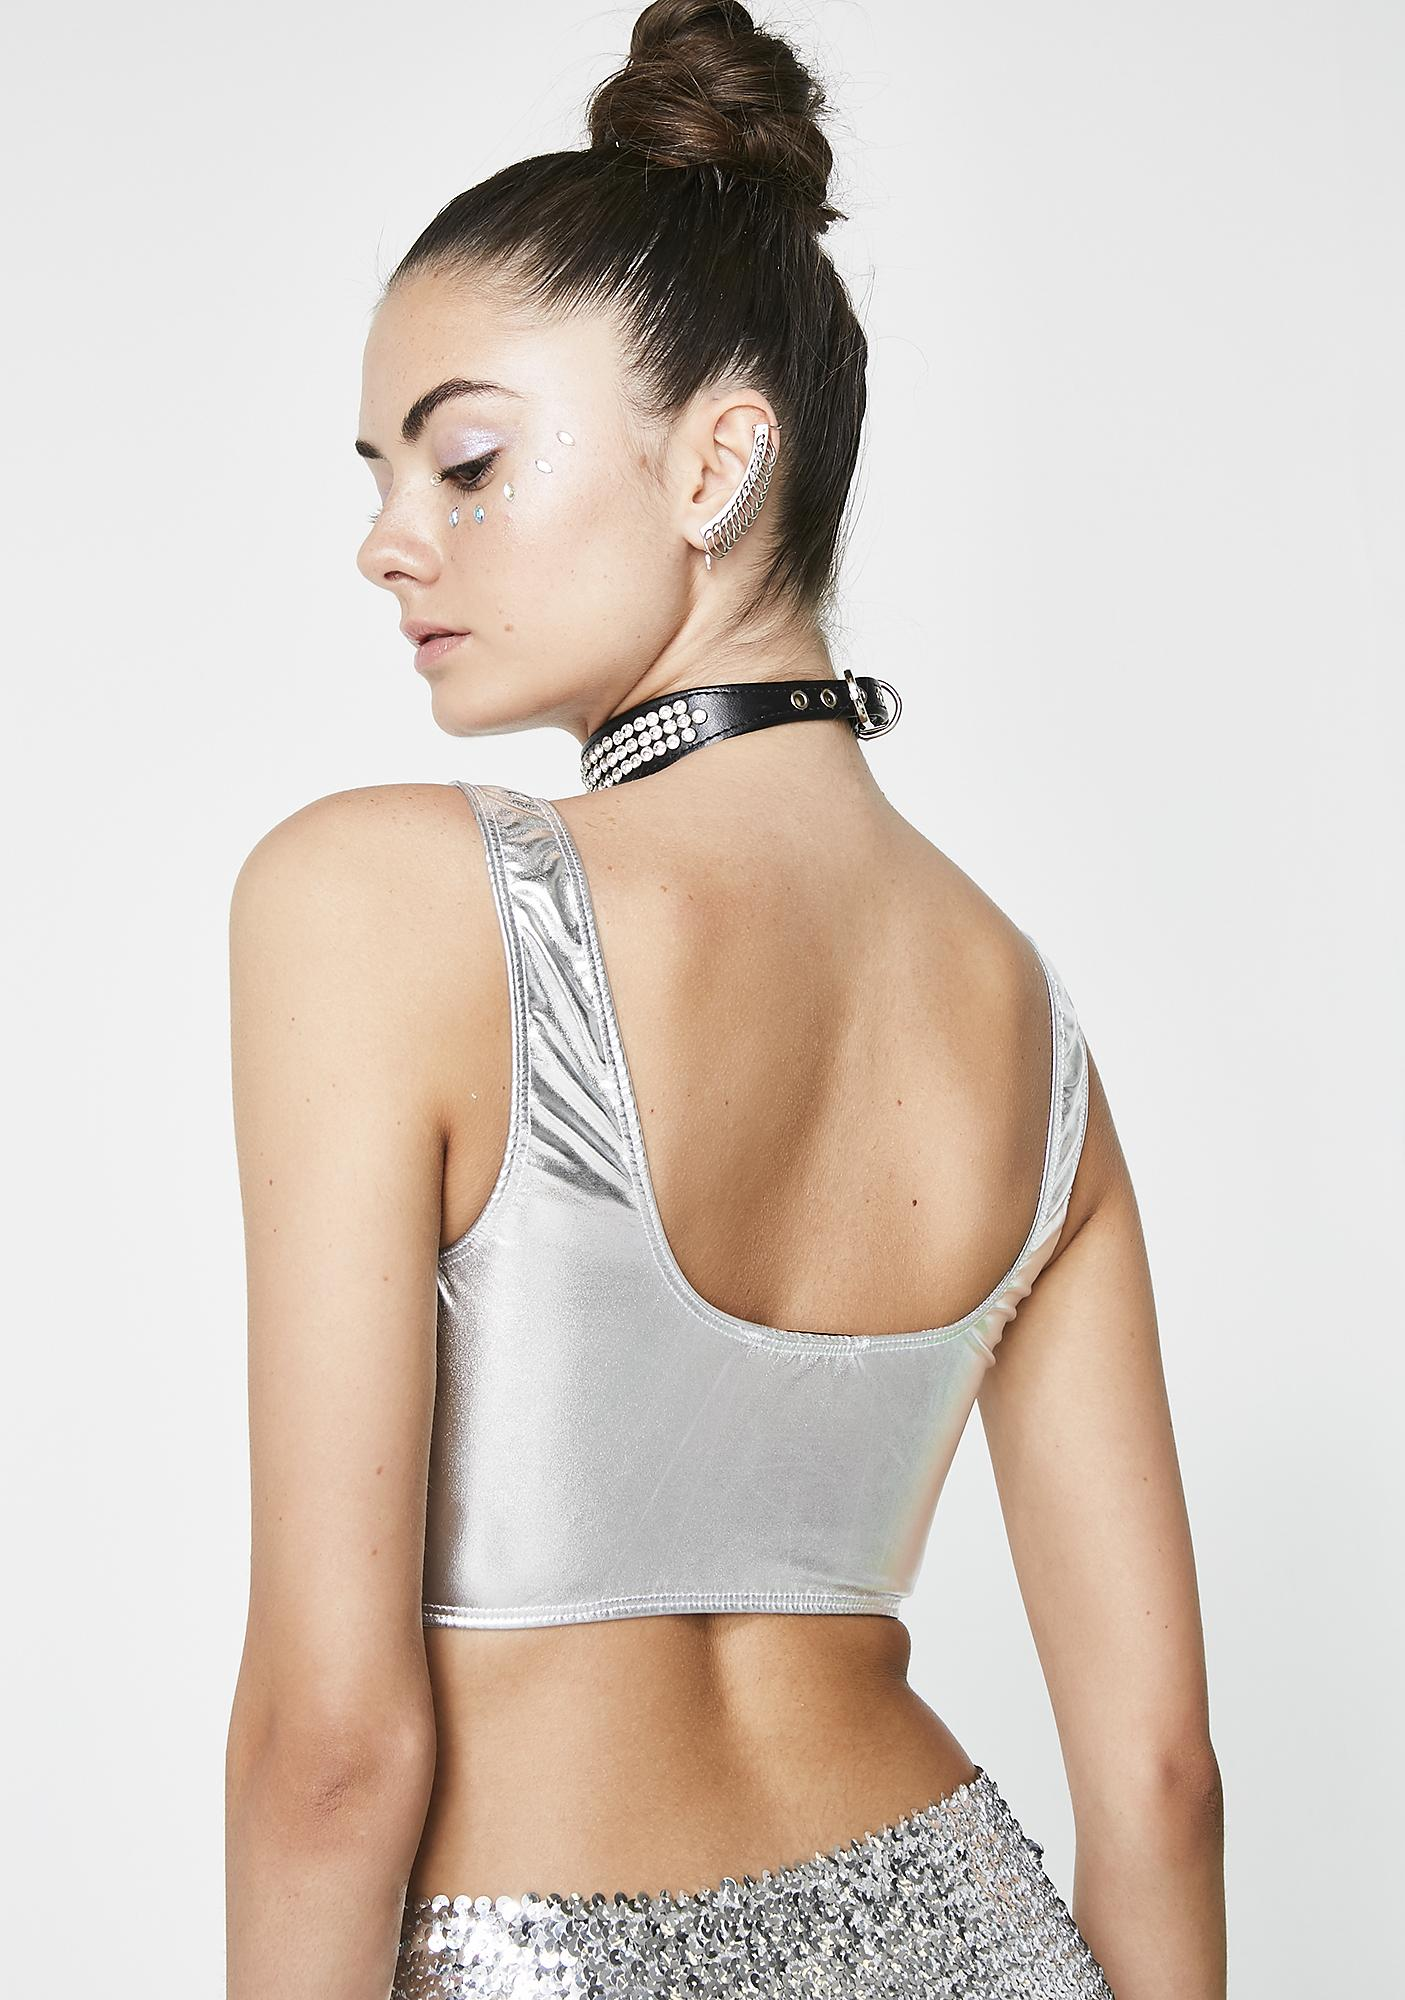 Exxxtragalactic Metallic Crop Top